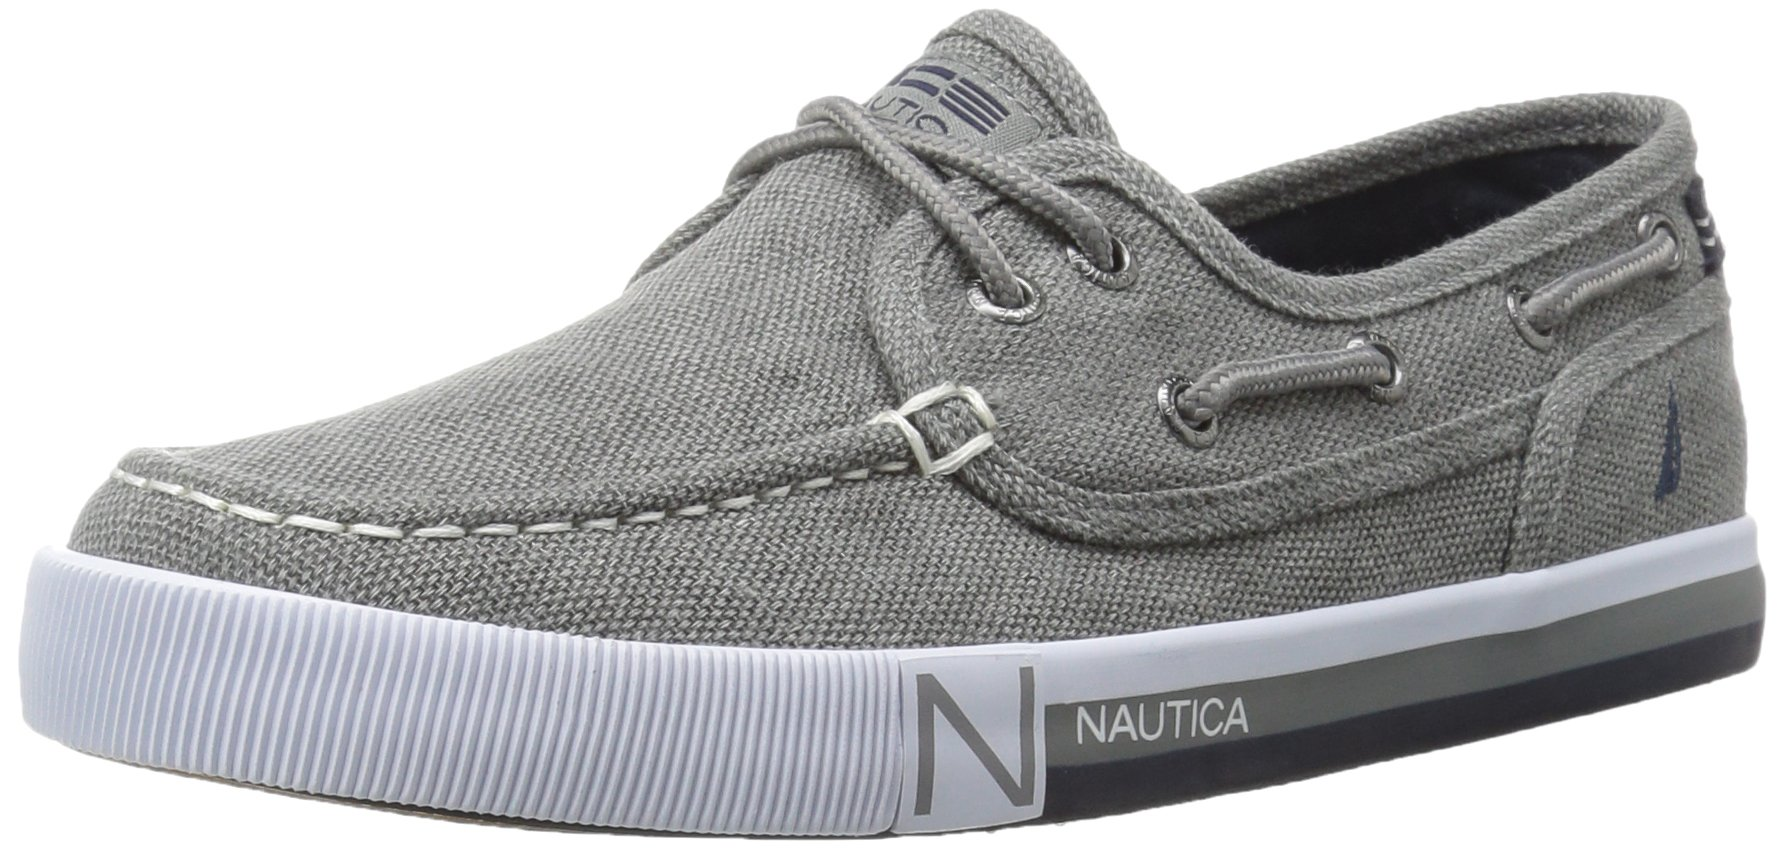 Nautica Boys' Spinnaker Boat Shoe, Grey Washed, 1 M US Little Kid